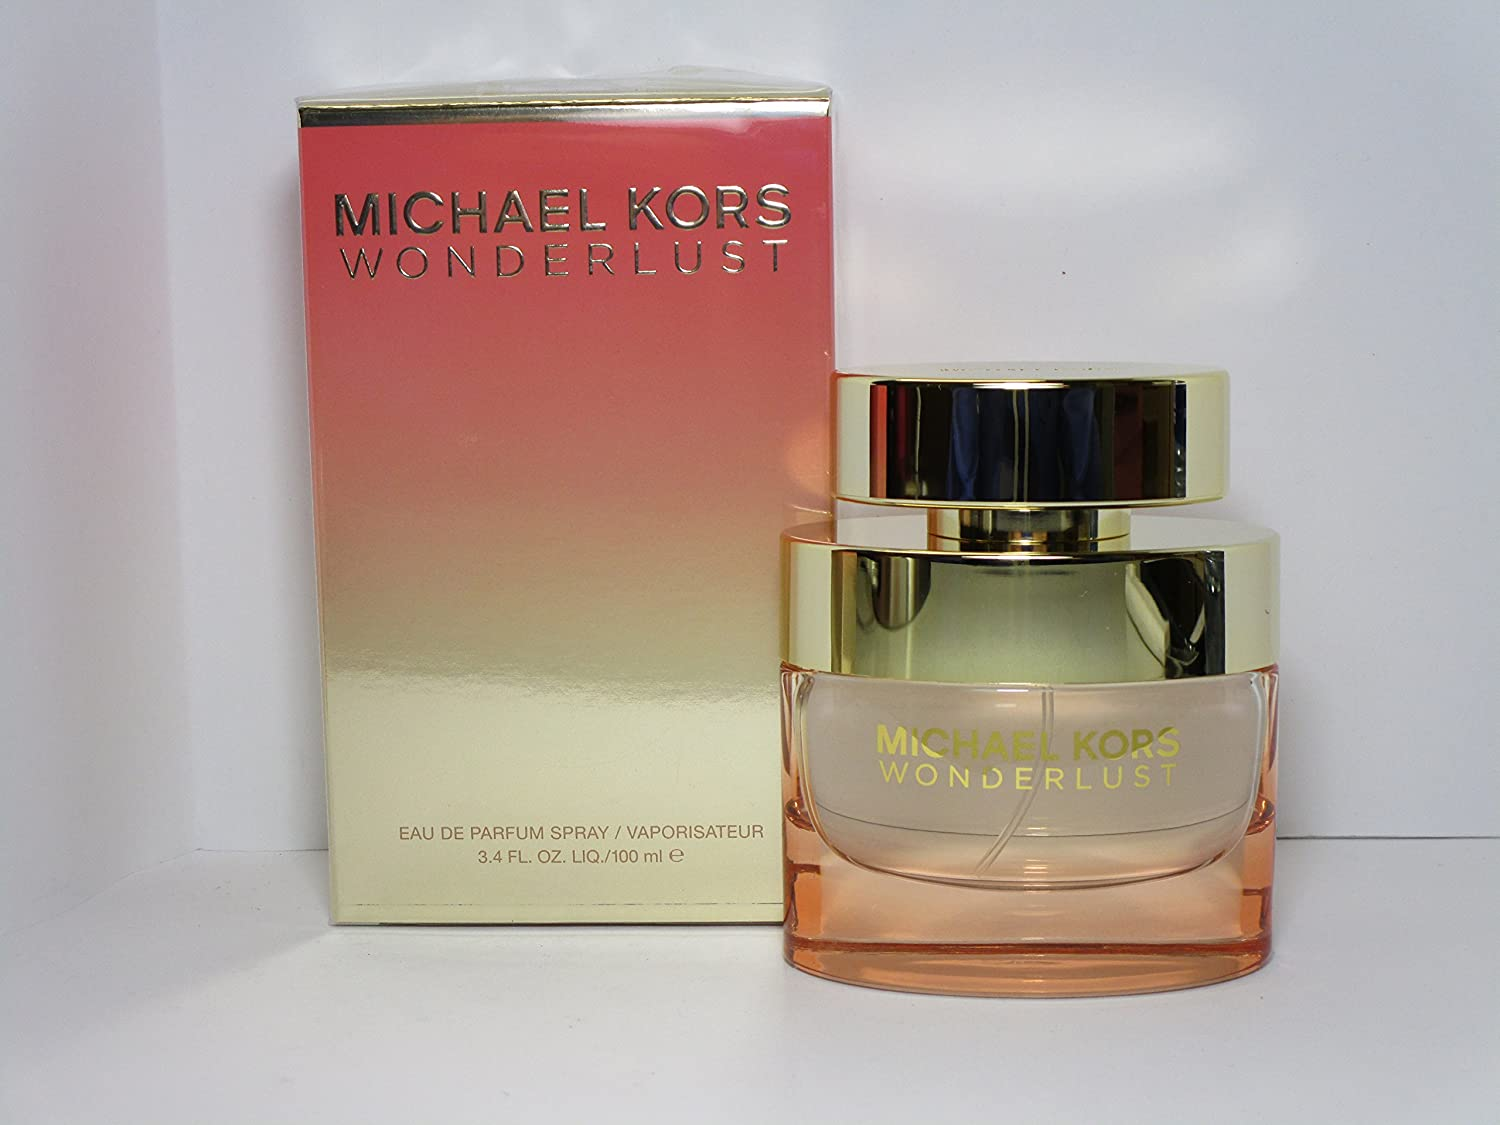 Michael Kors Wonderlust Eau de Parfum 3.4 oz Newly Launched